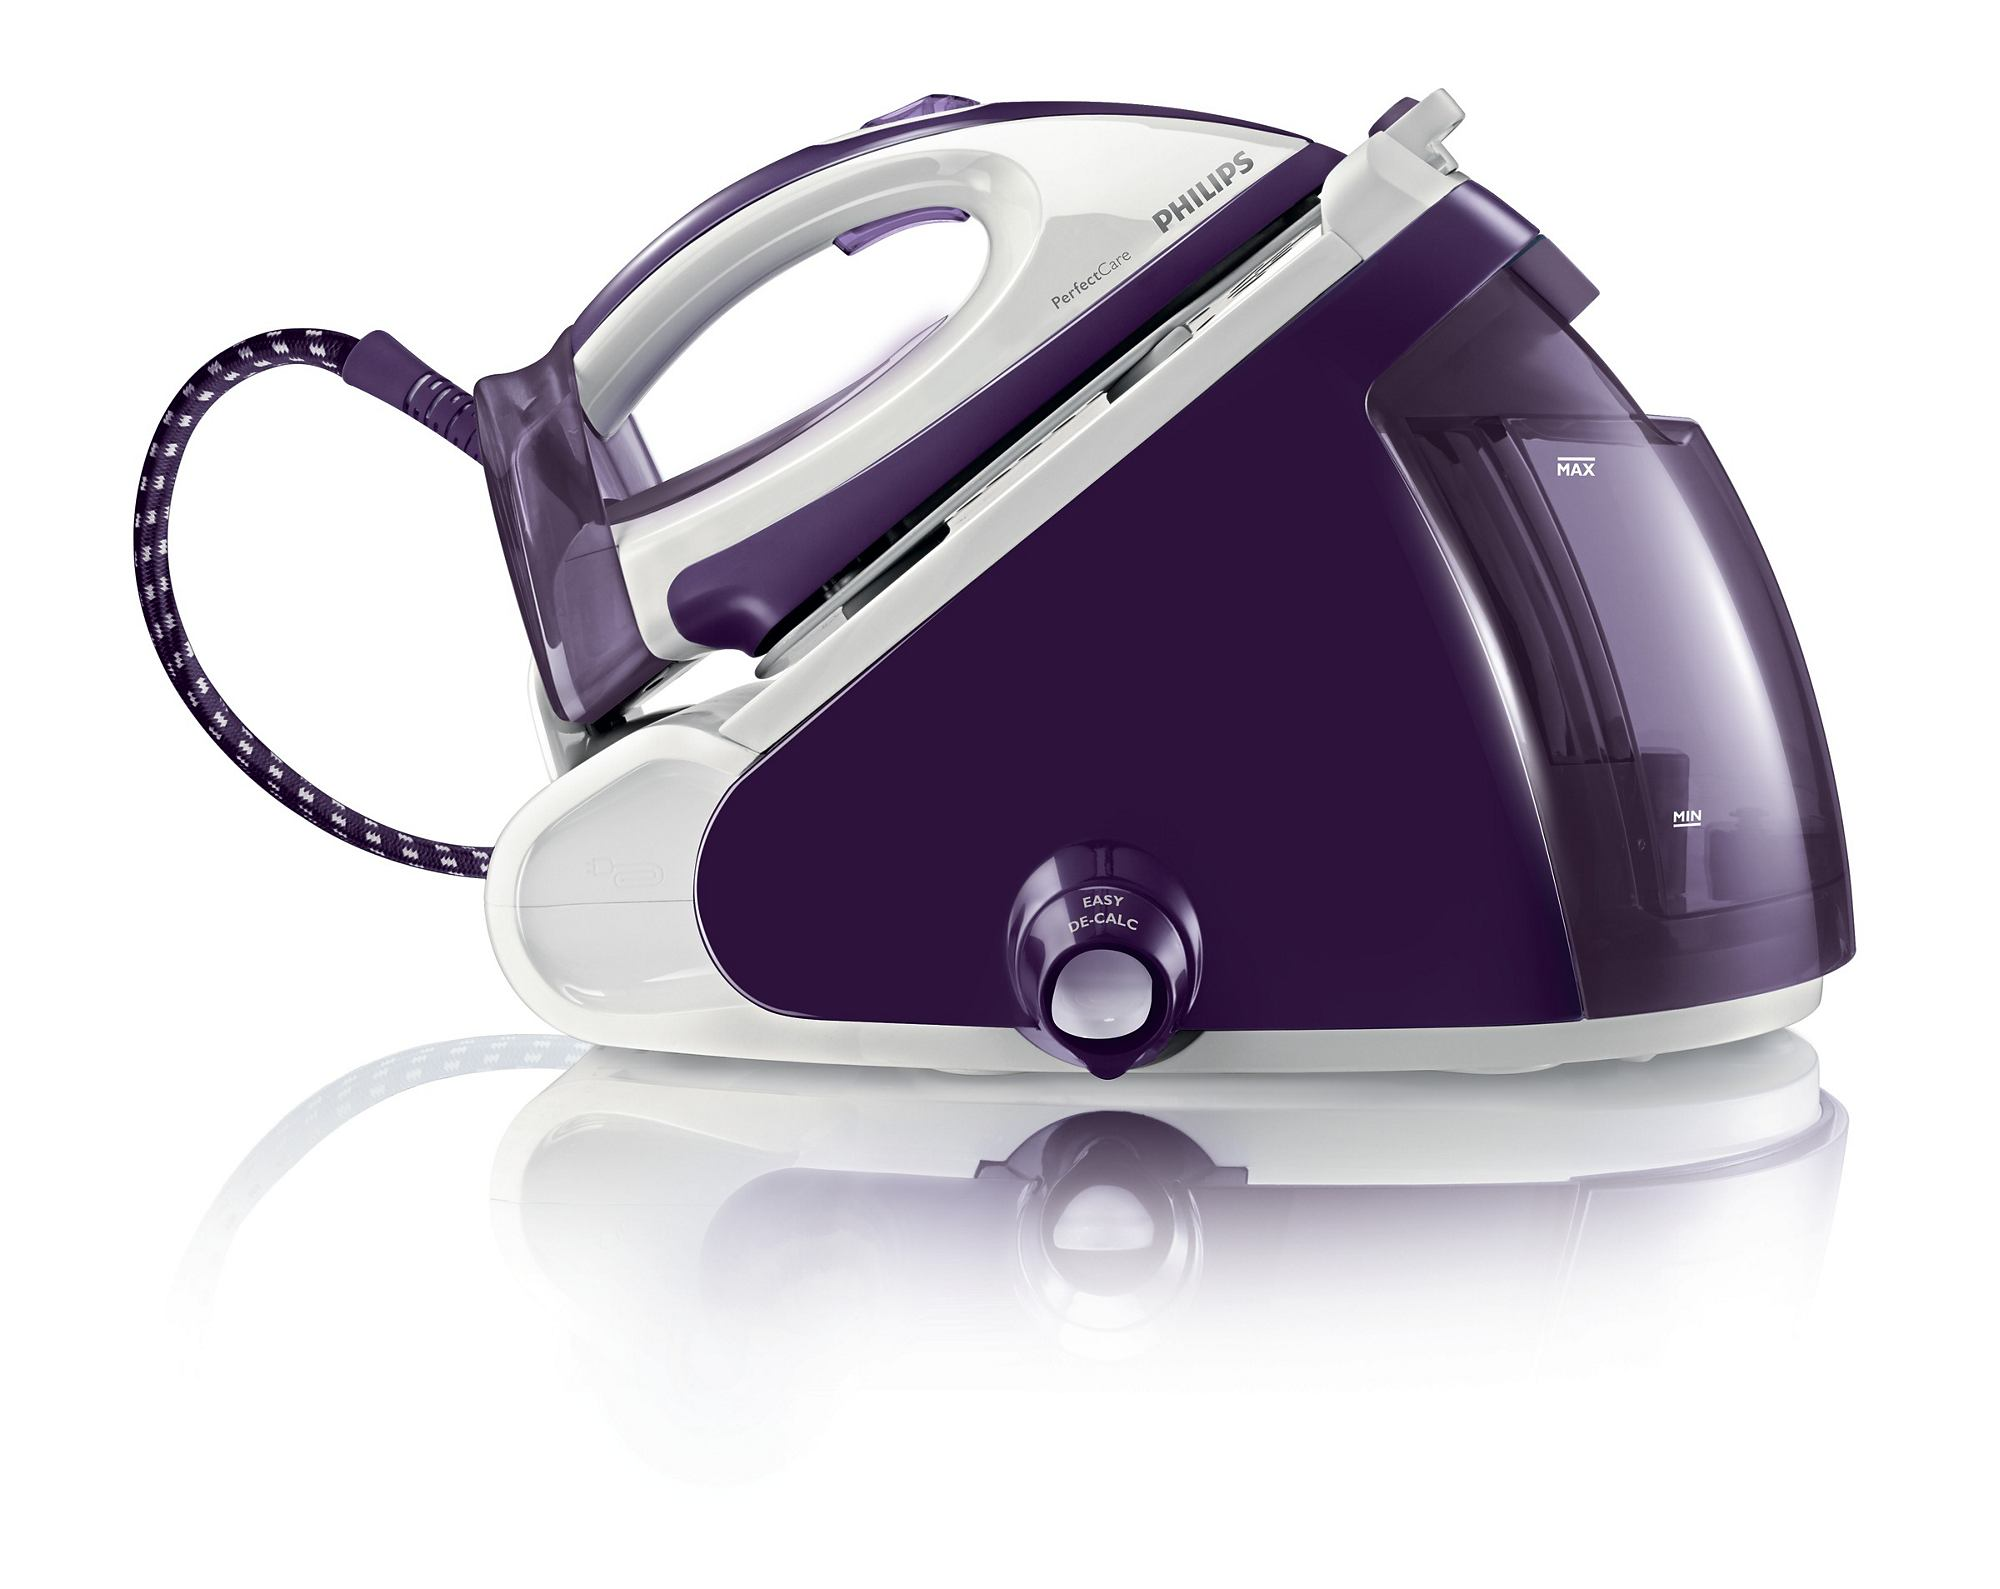 PHILIPS GC9240 02 PERFECT CARE STEAM GENERATOR IRON